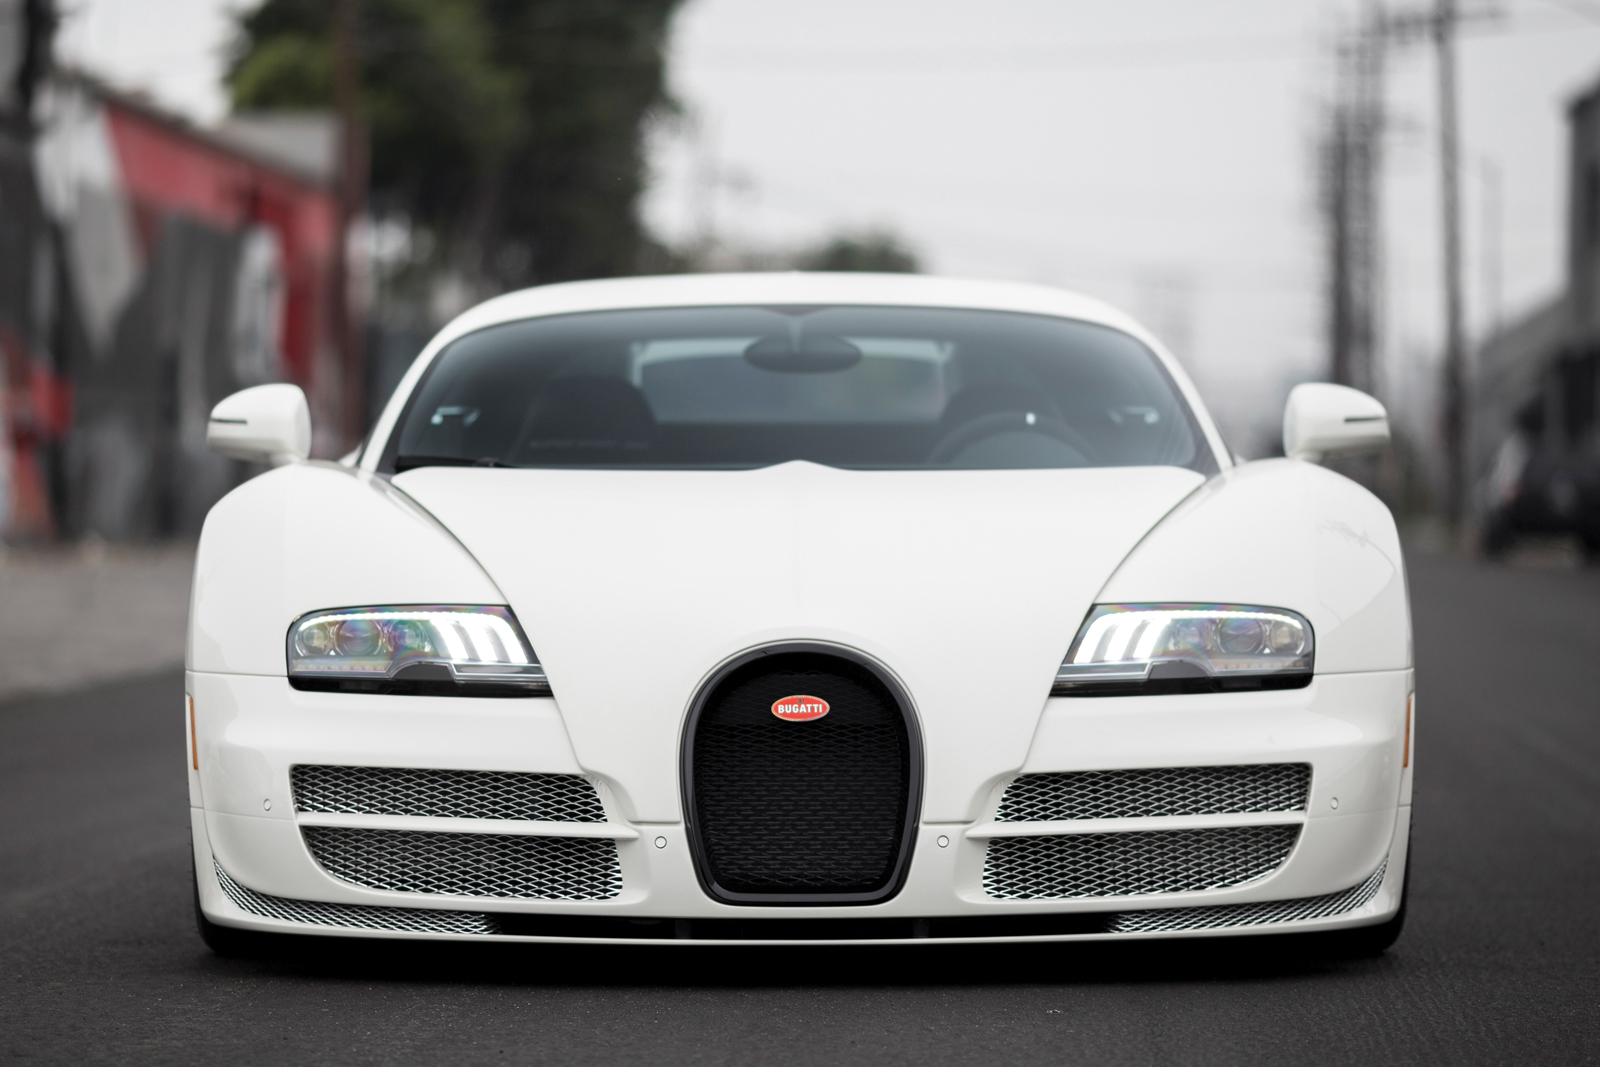 Now's Your Chance to Buy Yourself the Final Bugatti Veyron Coupe ...